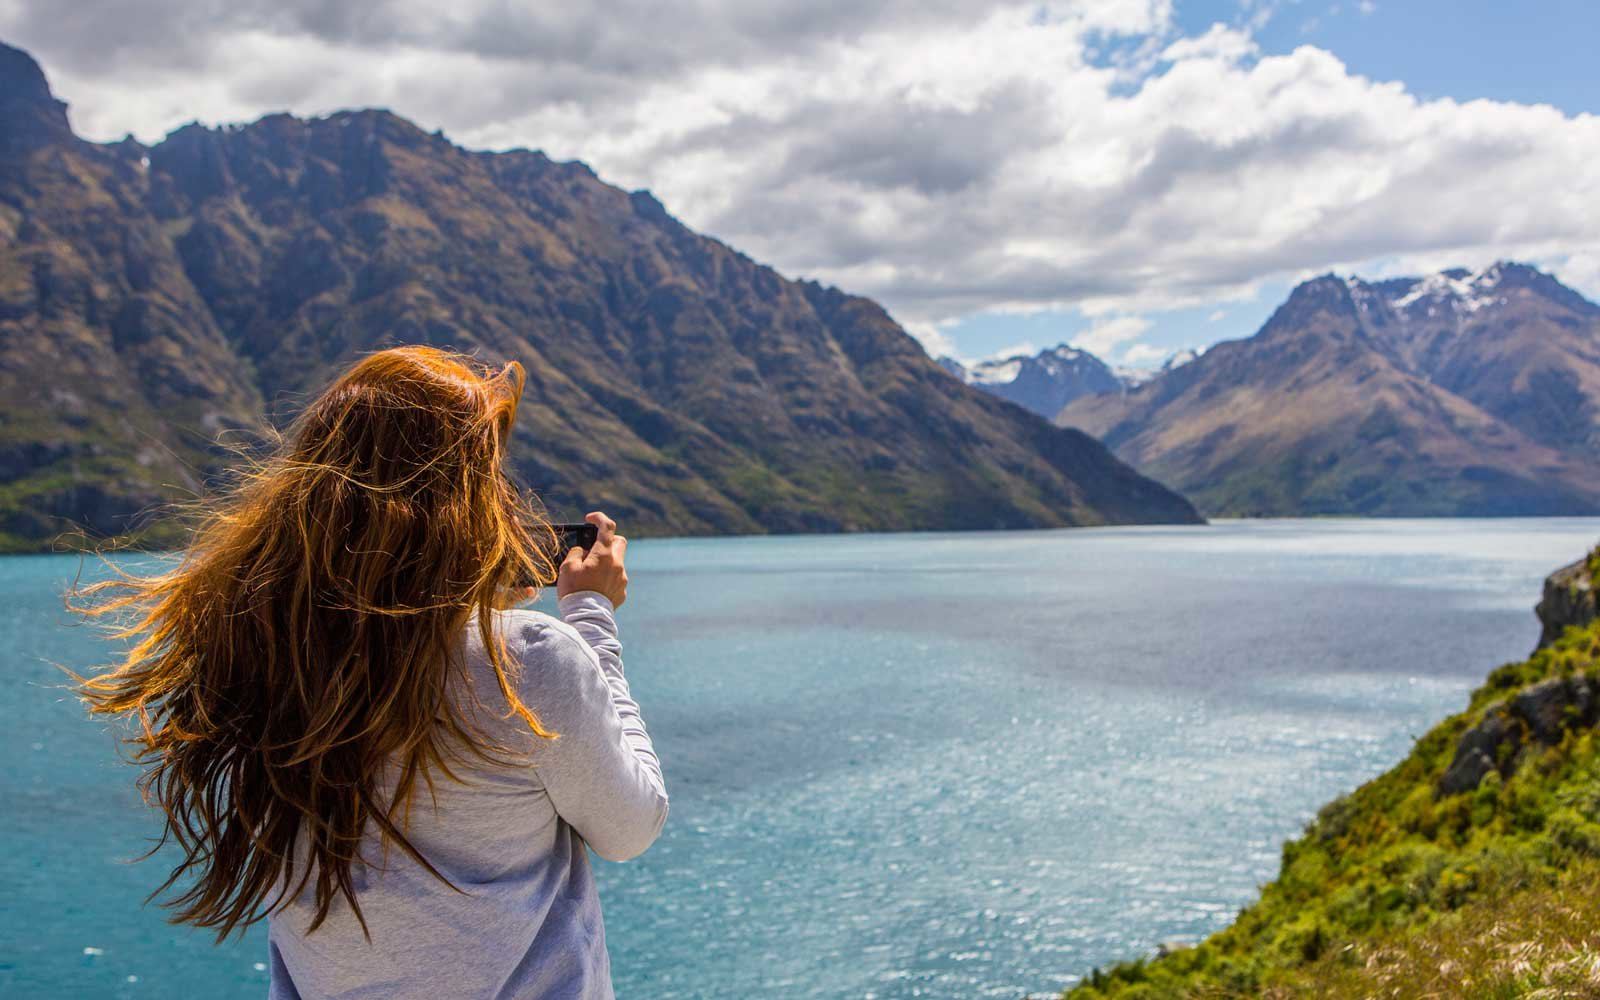 Woman at Lake Wakatipu, New Zealand